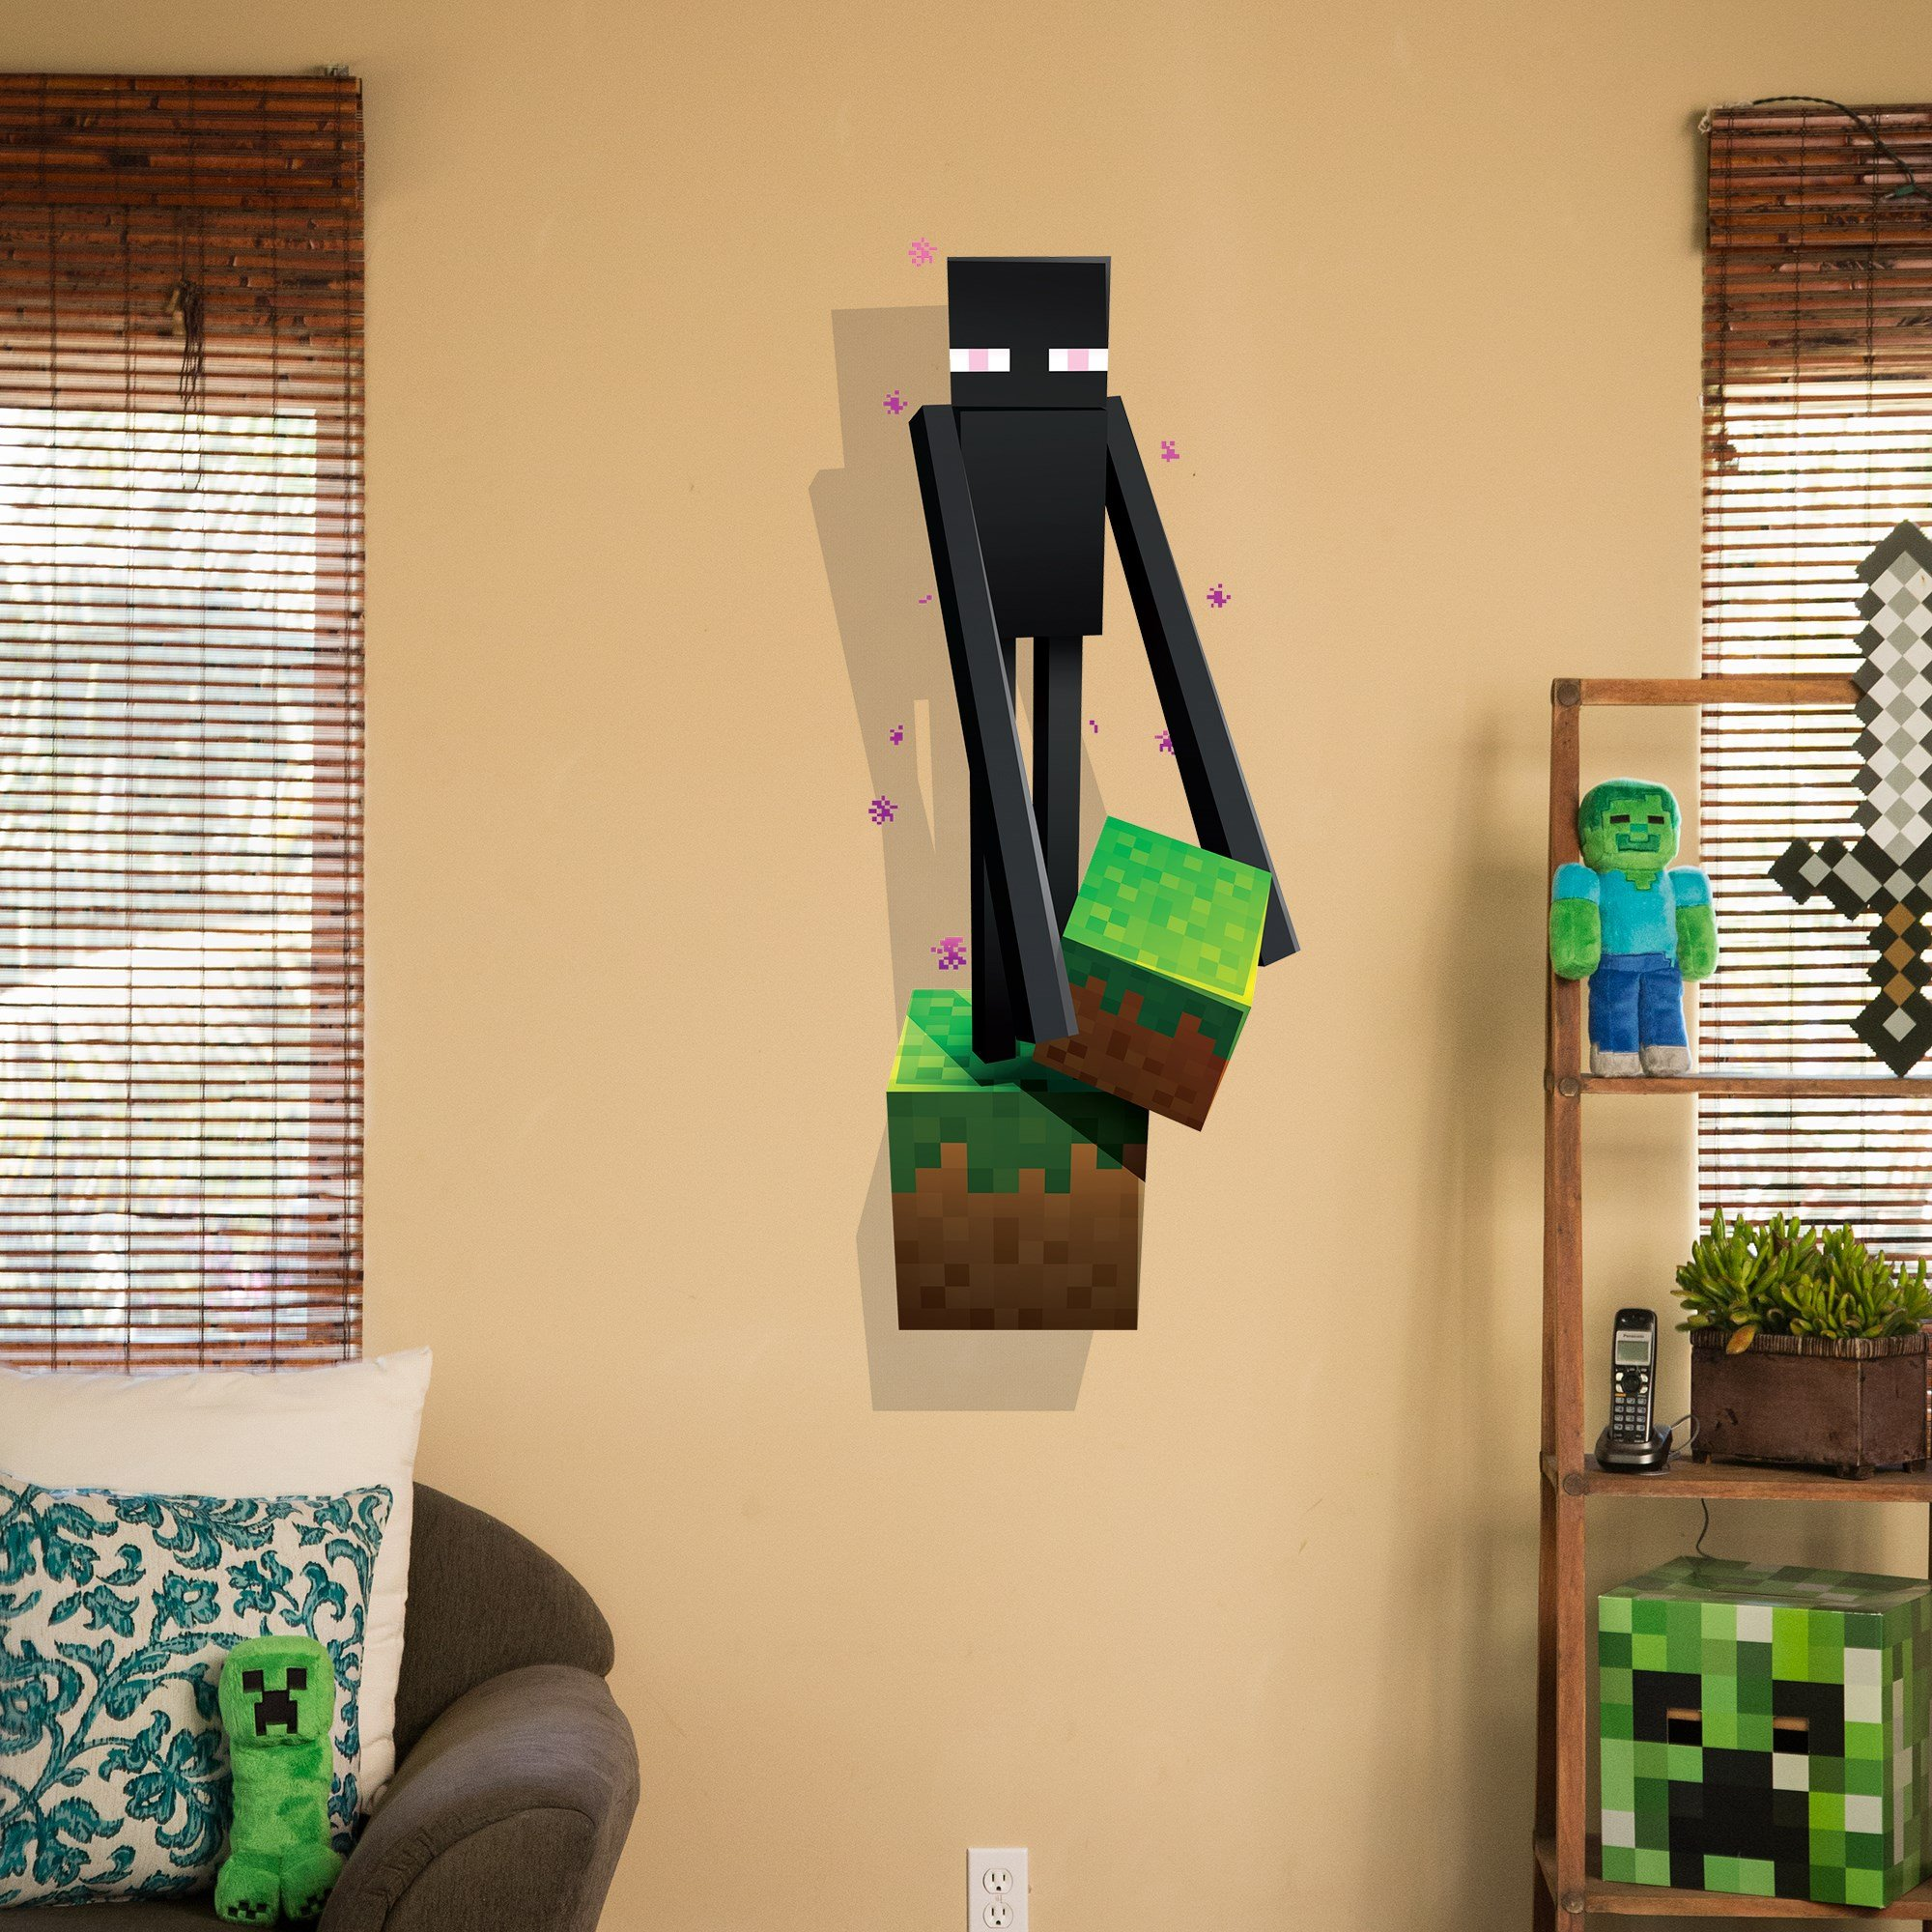 JINX Minecraft Wall Cling Decal Set (Creeper, Enderman, Pig, Cow) by JINX (Image #4)